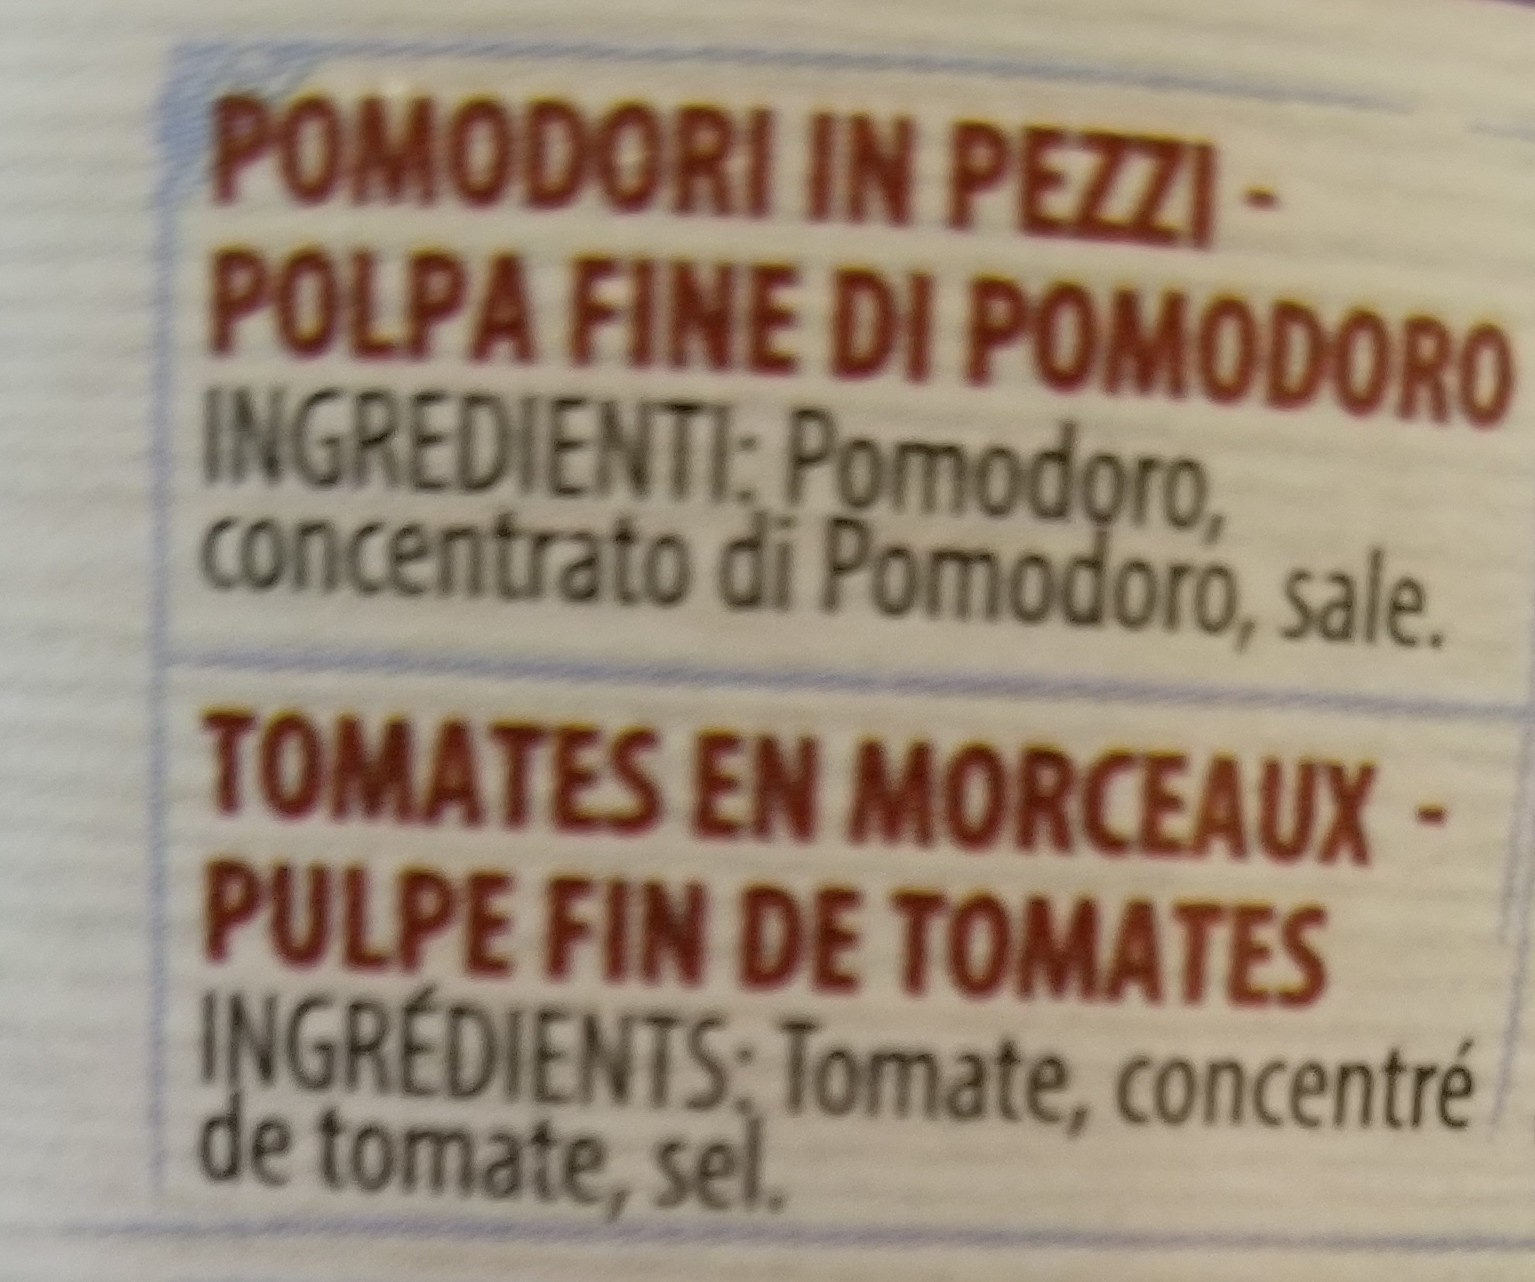 Polpa extrafine - Ingredienti